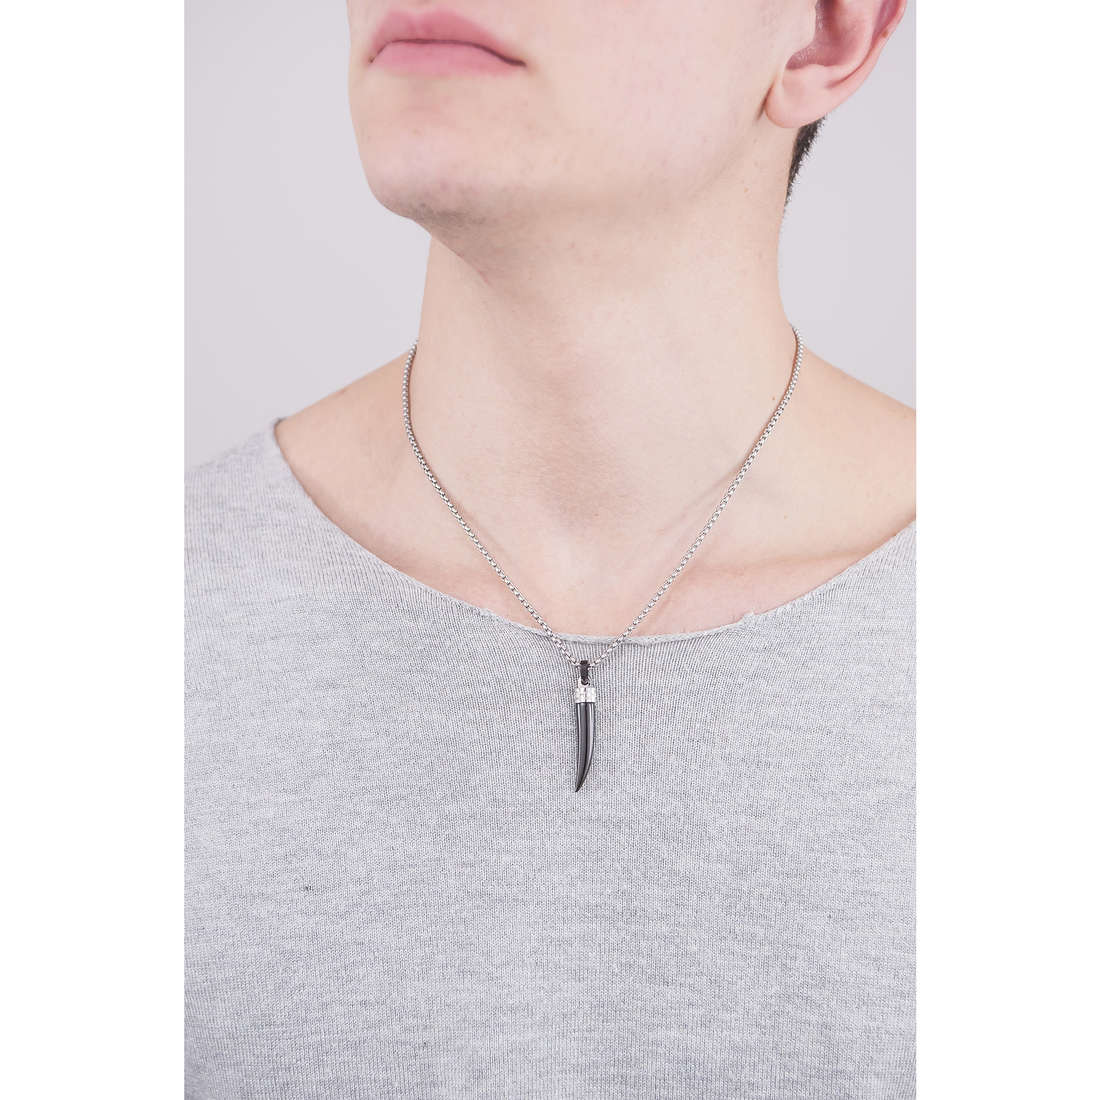 Brosway necklaces Sign man BGN05 indosso